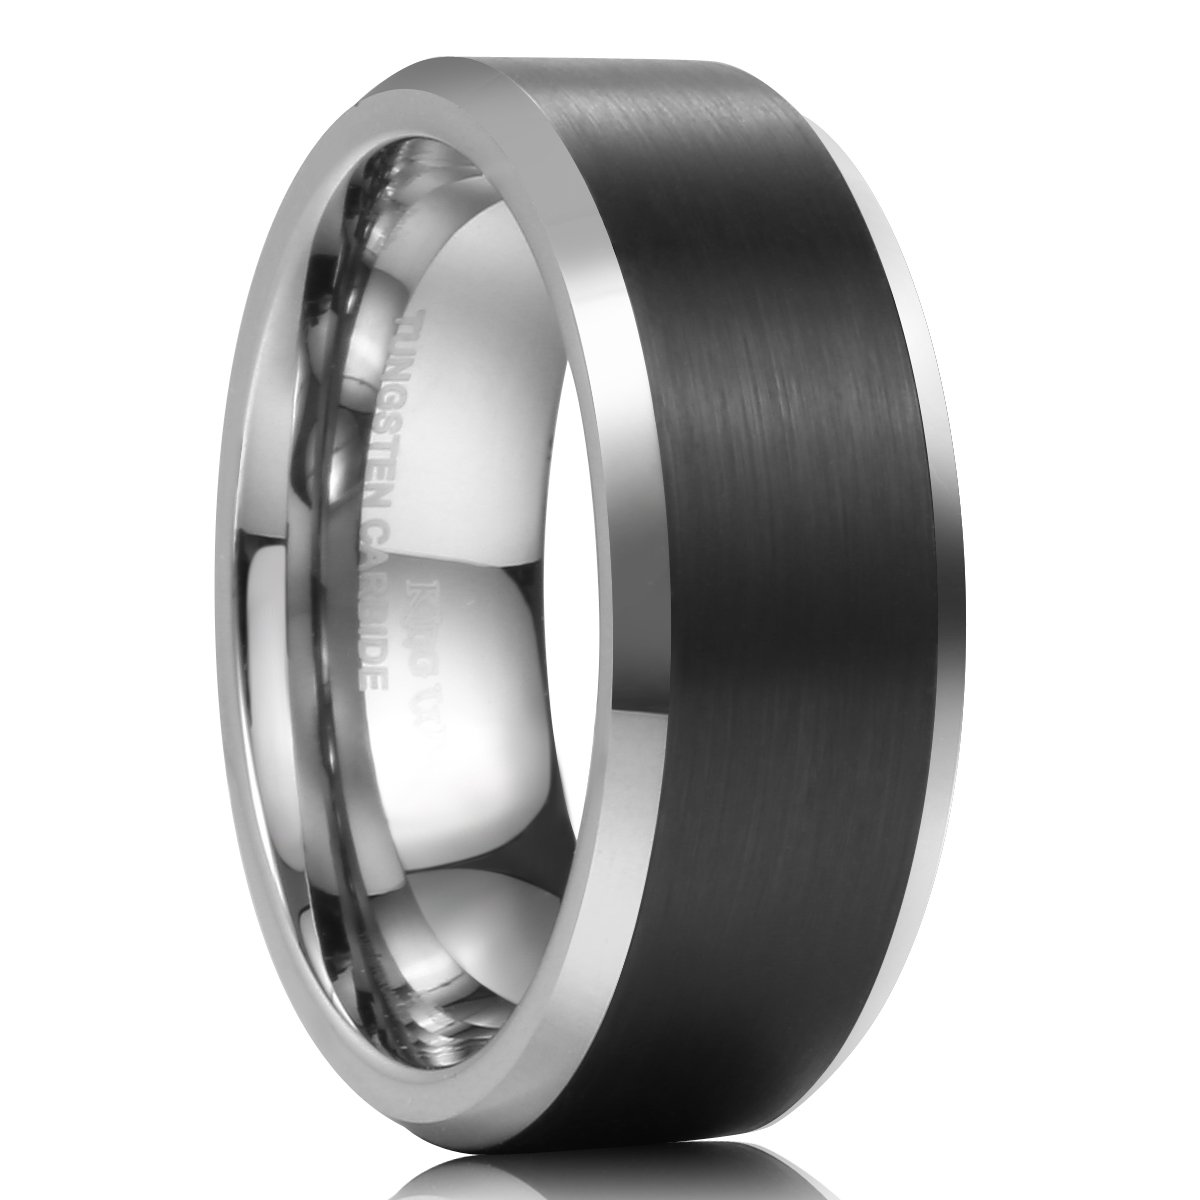 King Will CLASSIC 8mm Mens Tungsten Carbide Ring Wedding Band Black Brushed Matte Finished Comfort Fit R159